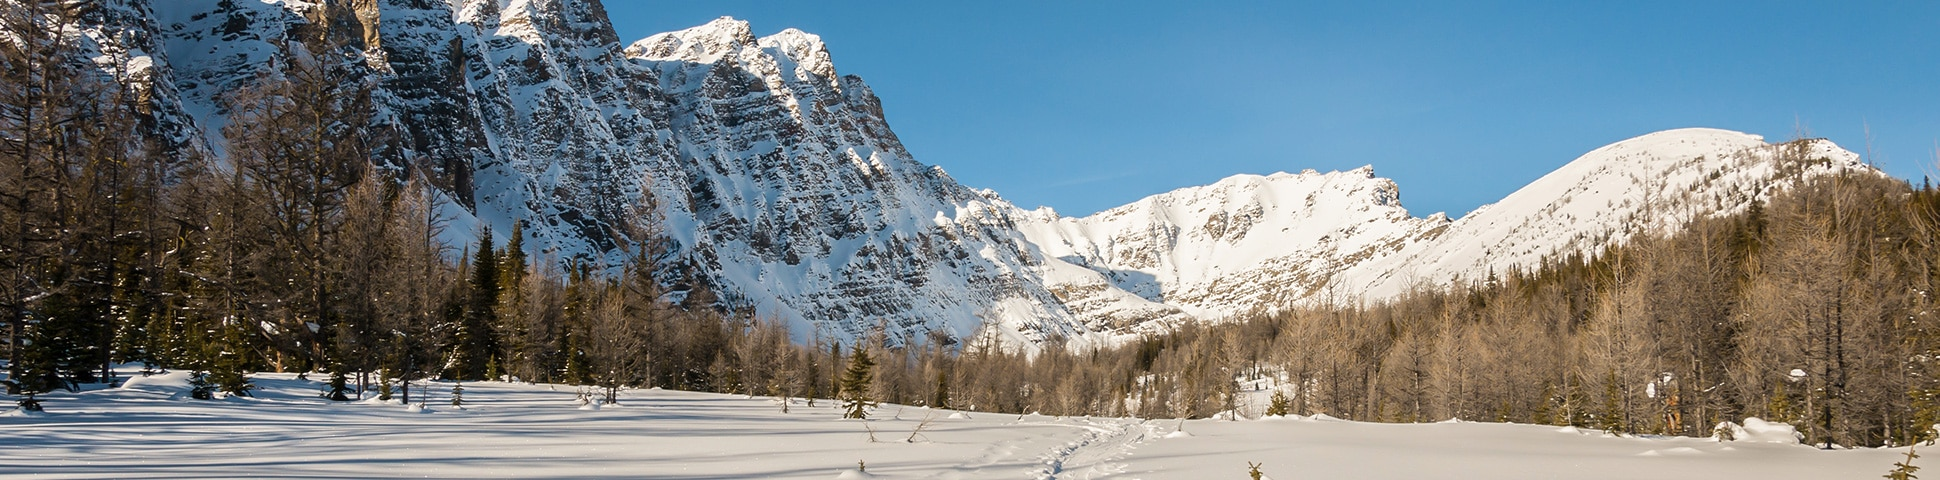 Best snowshoeing trails in Banff National Park